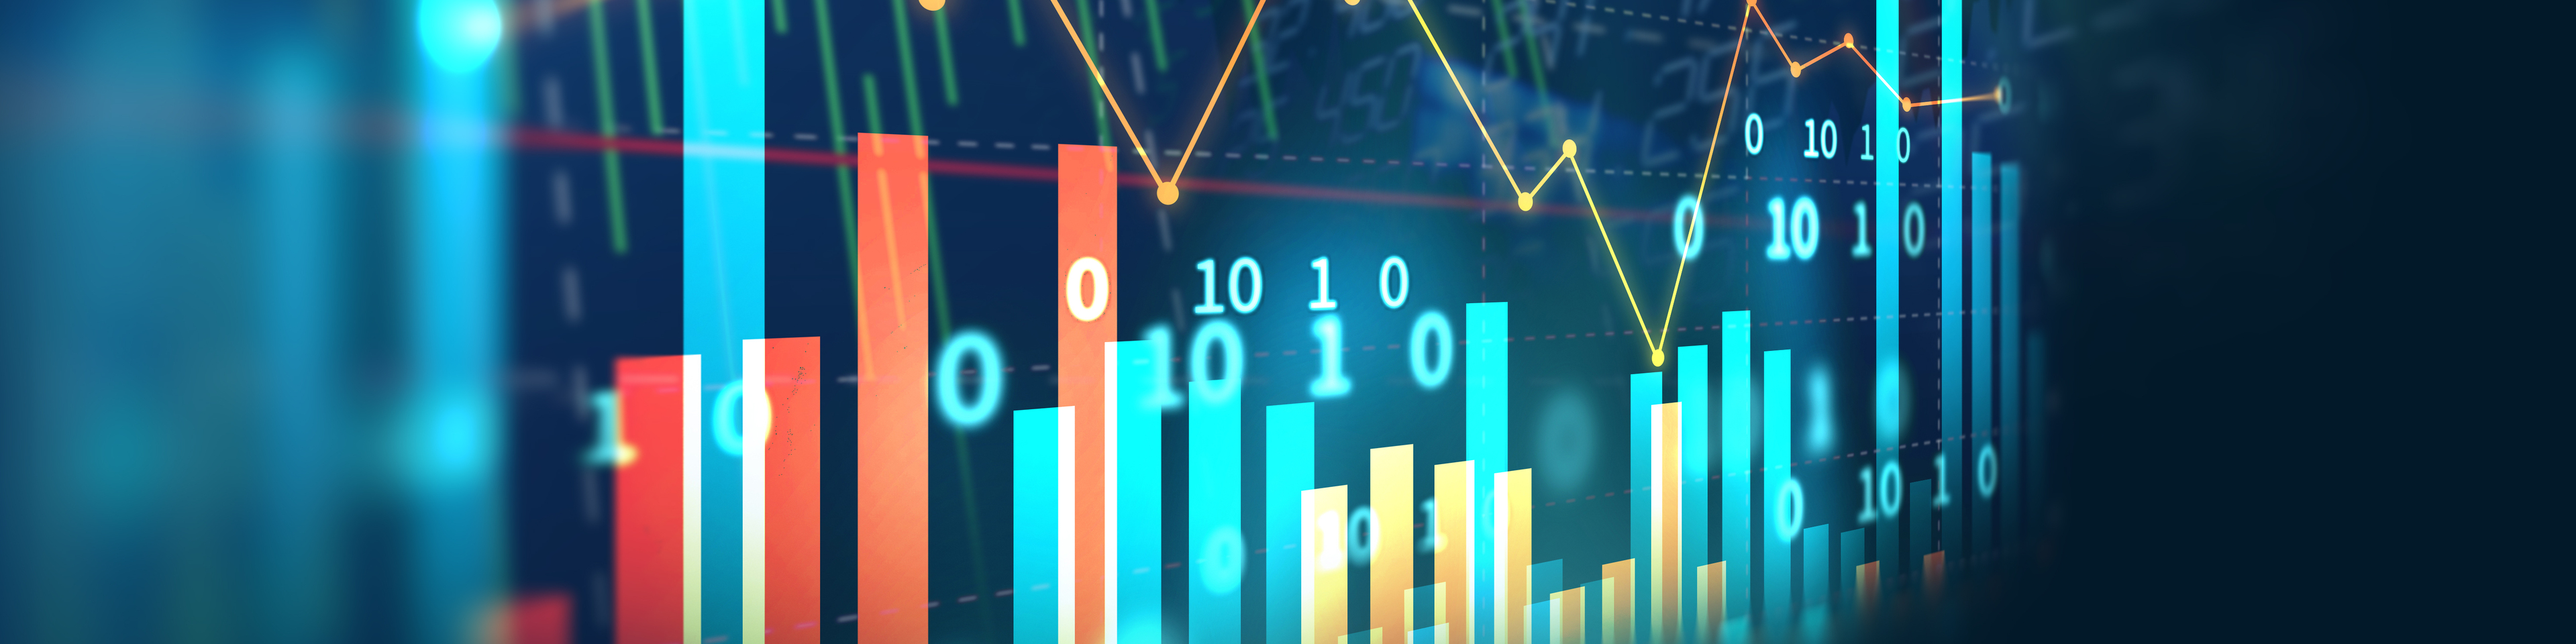 Corporates can get ahead of the game with tax analytics